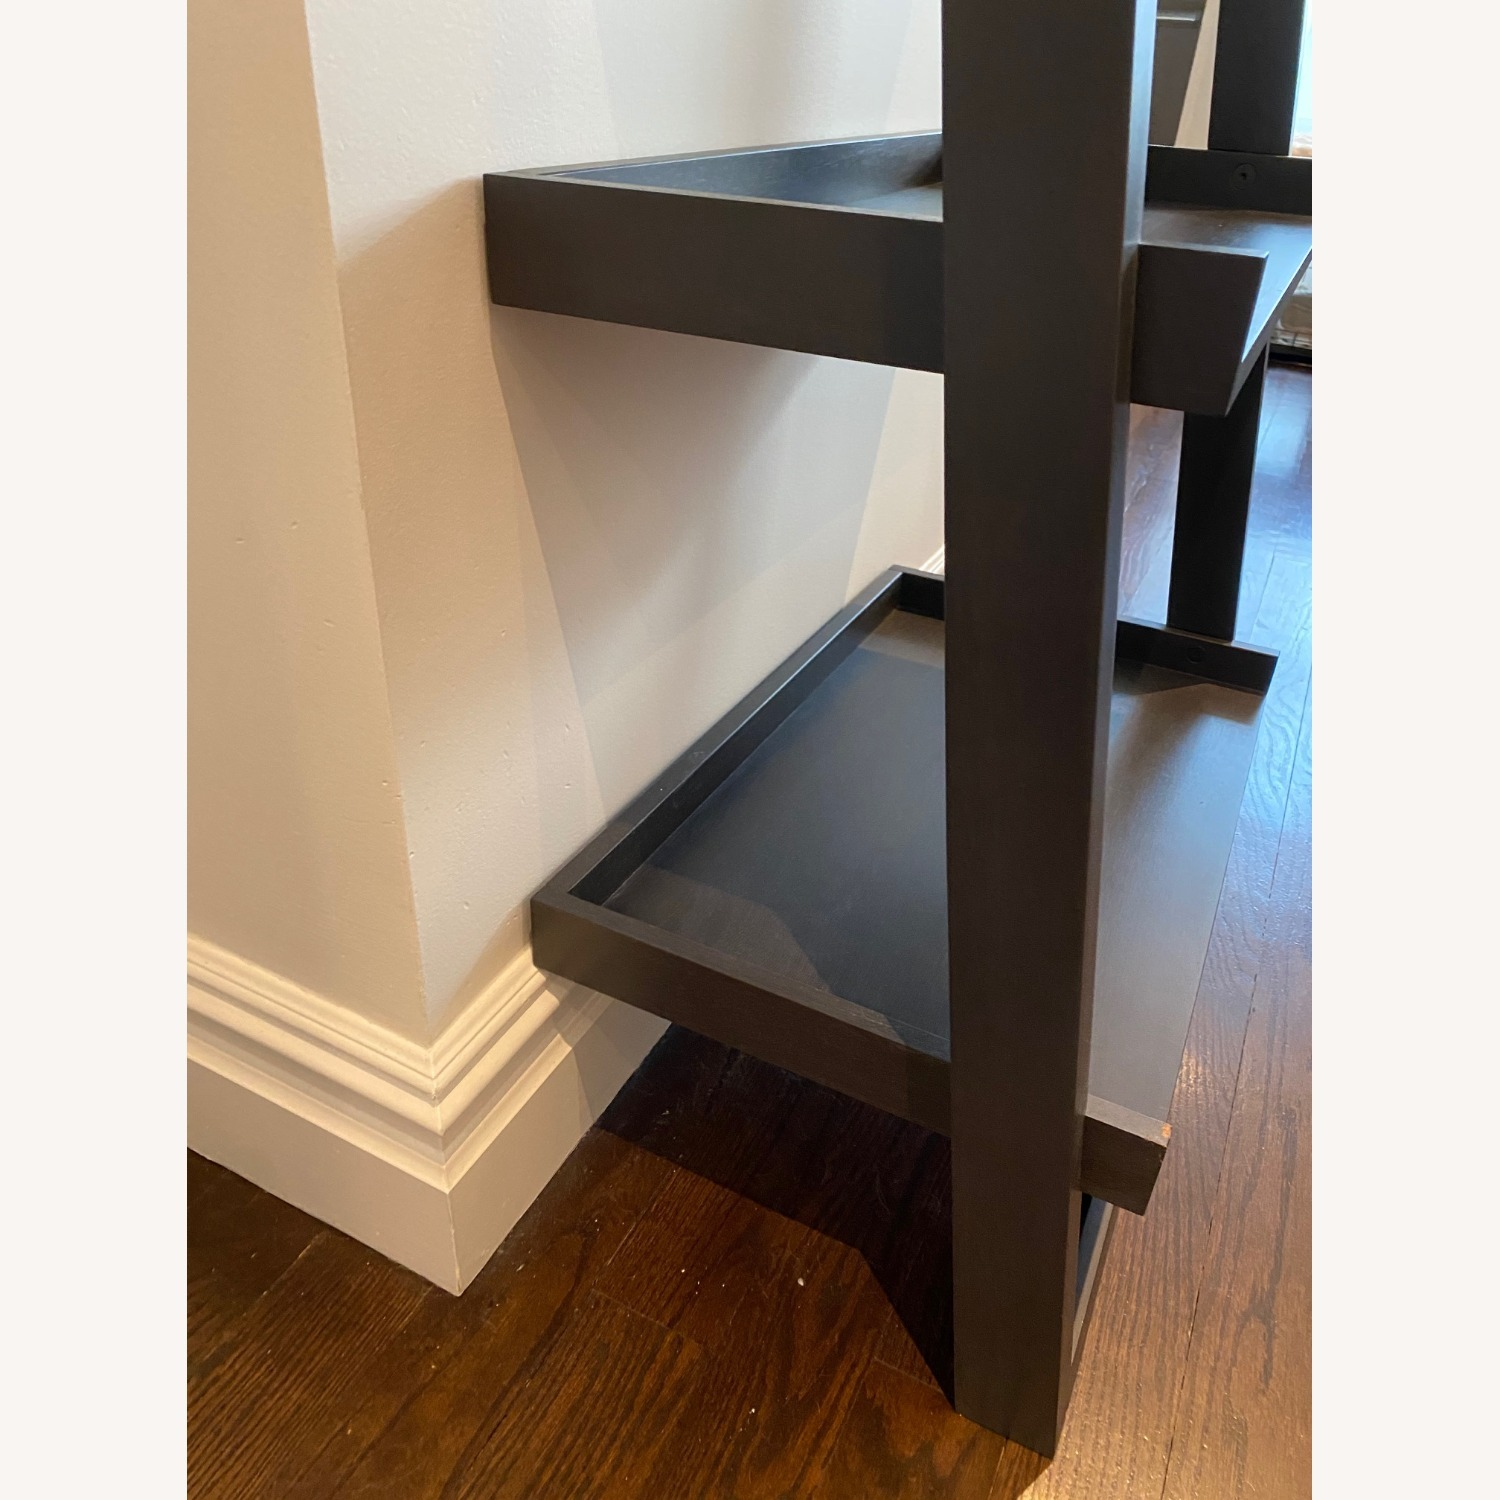 Crate and Barrel Sloane Leaning Bookcase - image-10